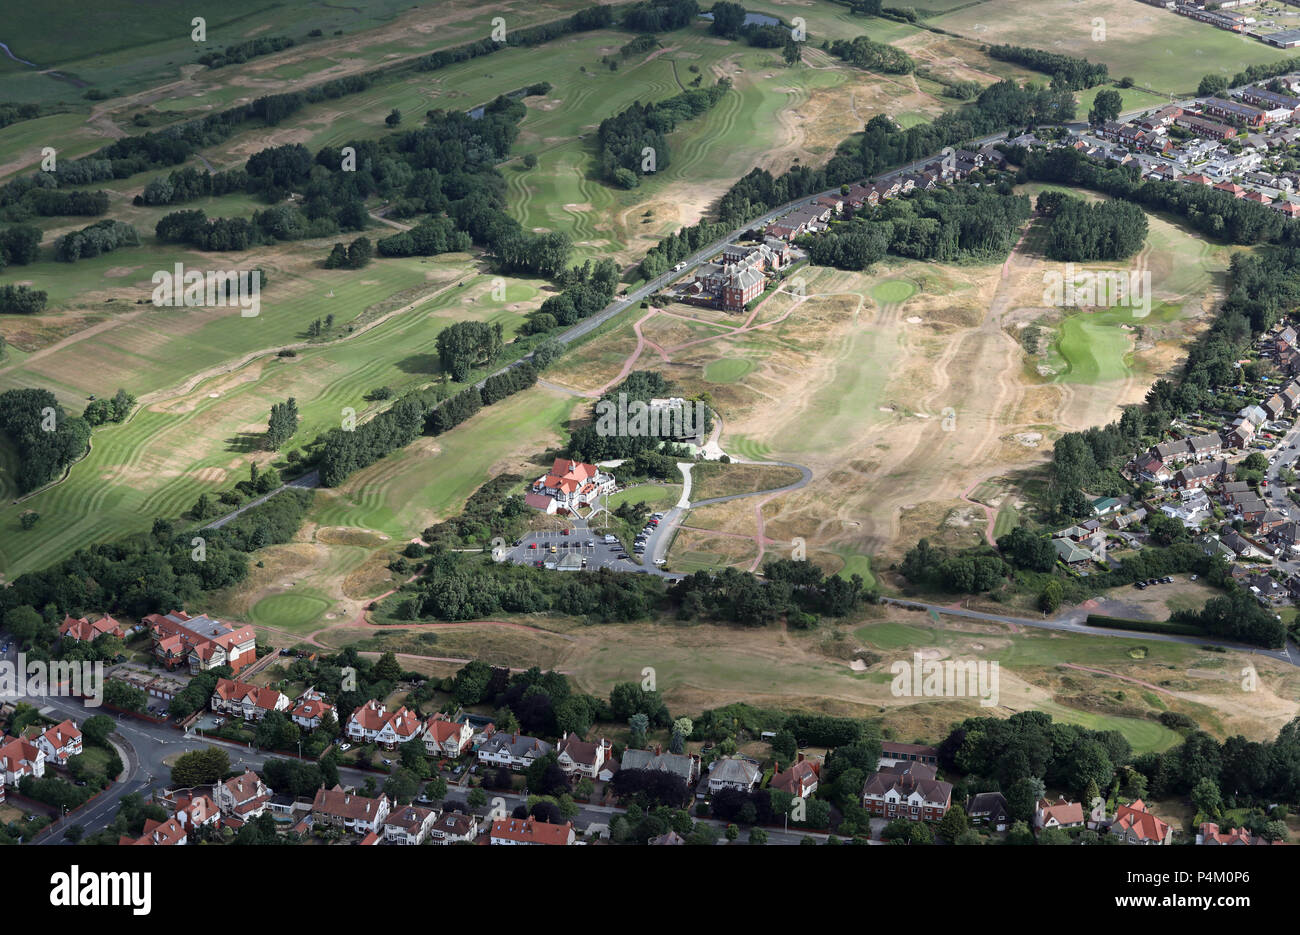 aerial view of Hesketh Golf Club links course, Southport, Lancashire - Stock Image